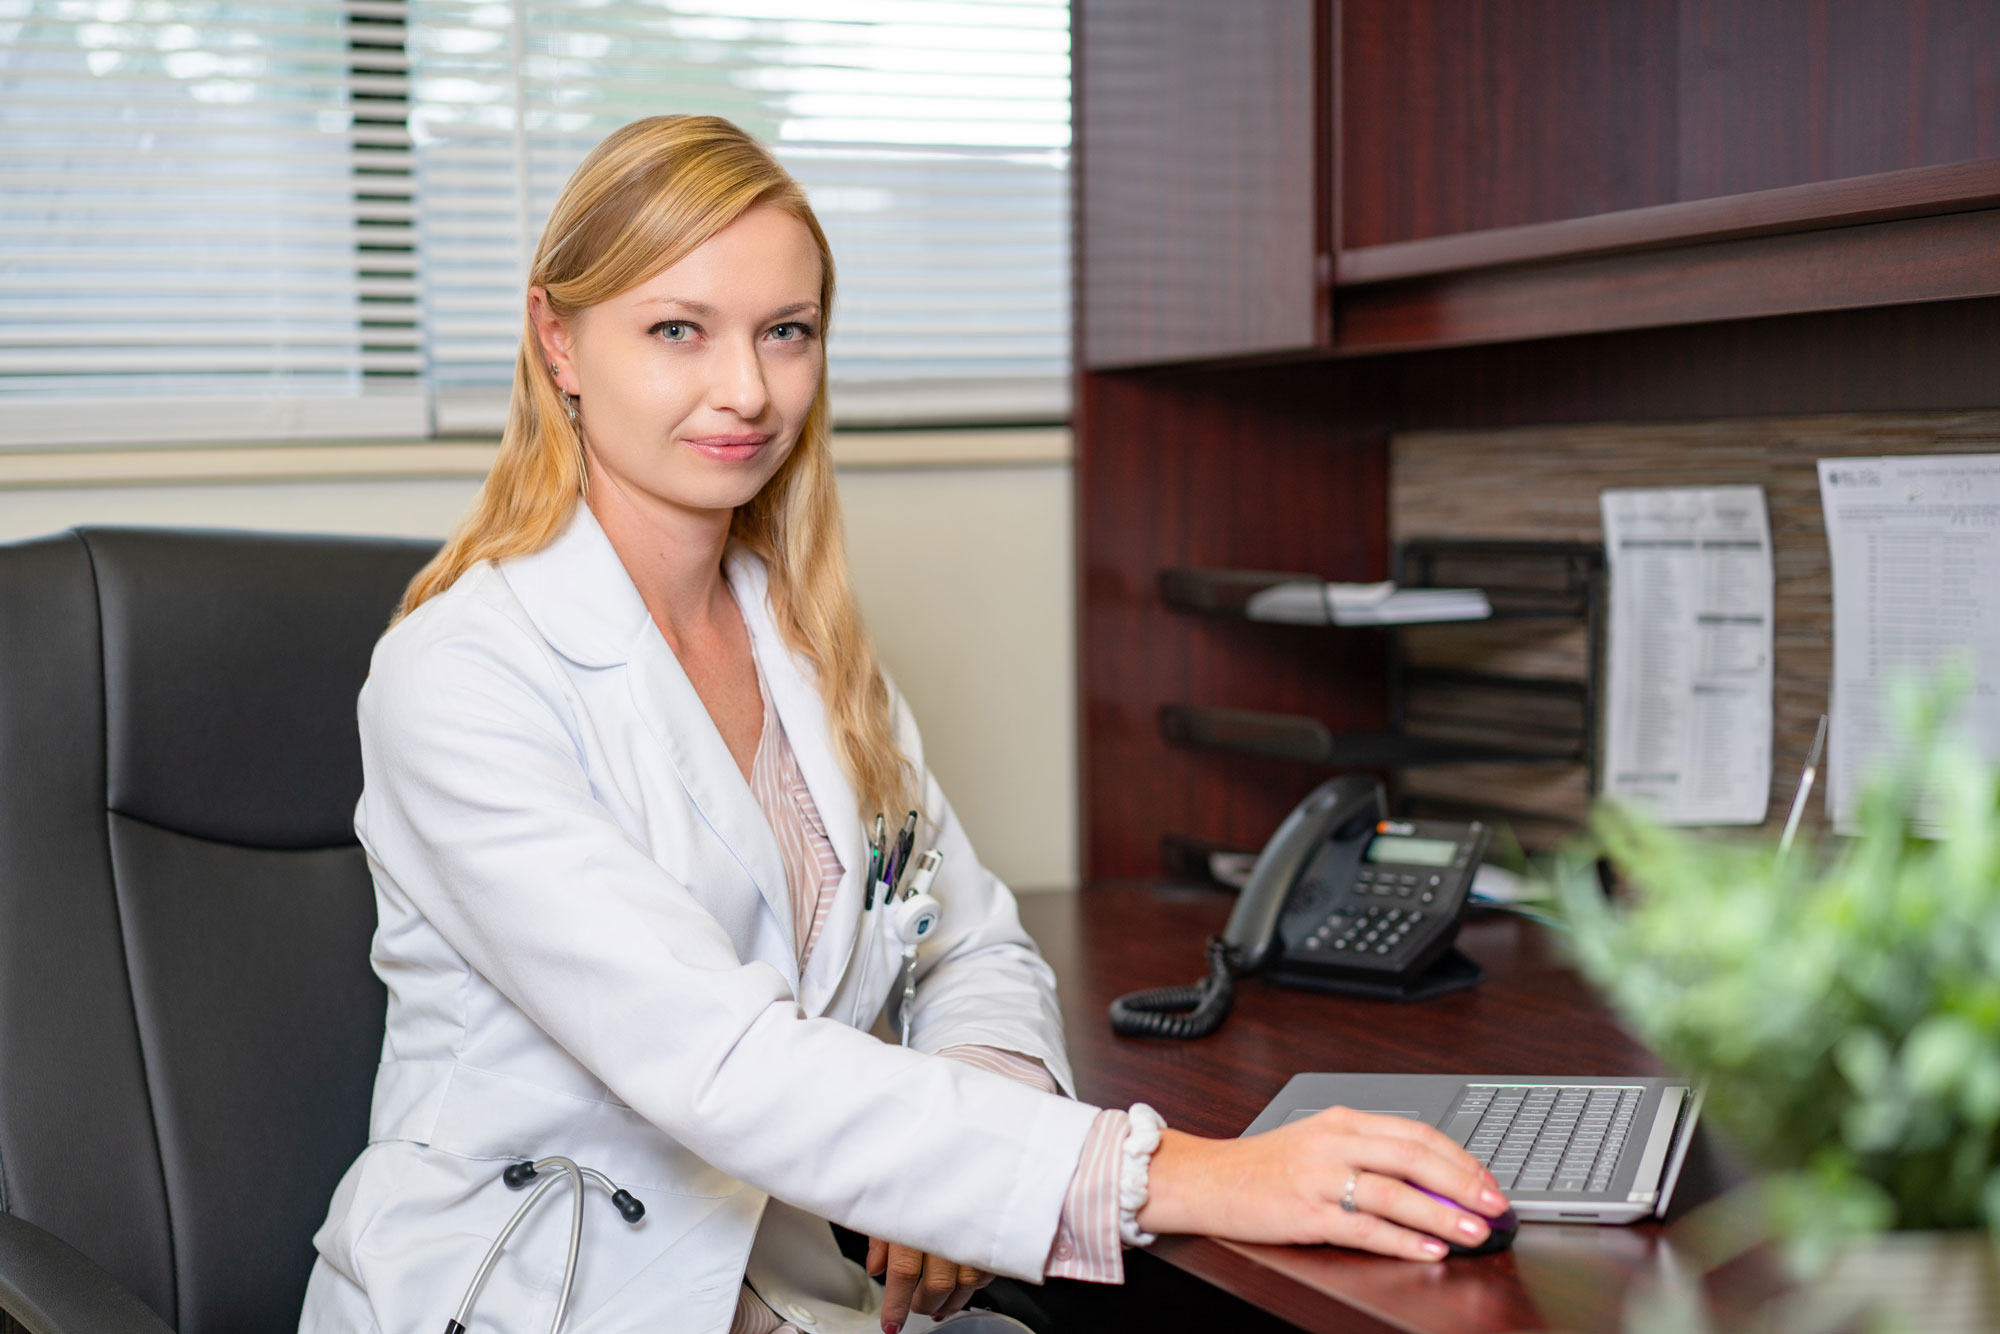 Health professional at desk, Friendship Physician Clinic, Nurse Practitioner, Indre Malaiskaite